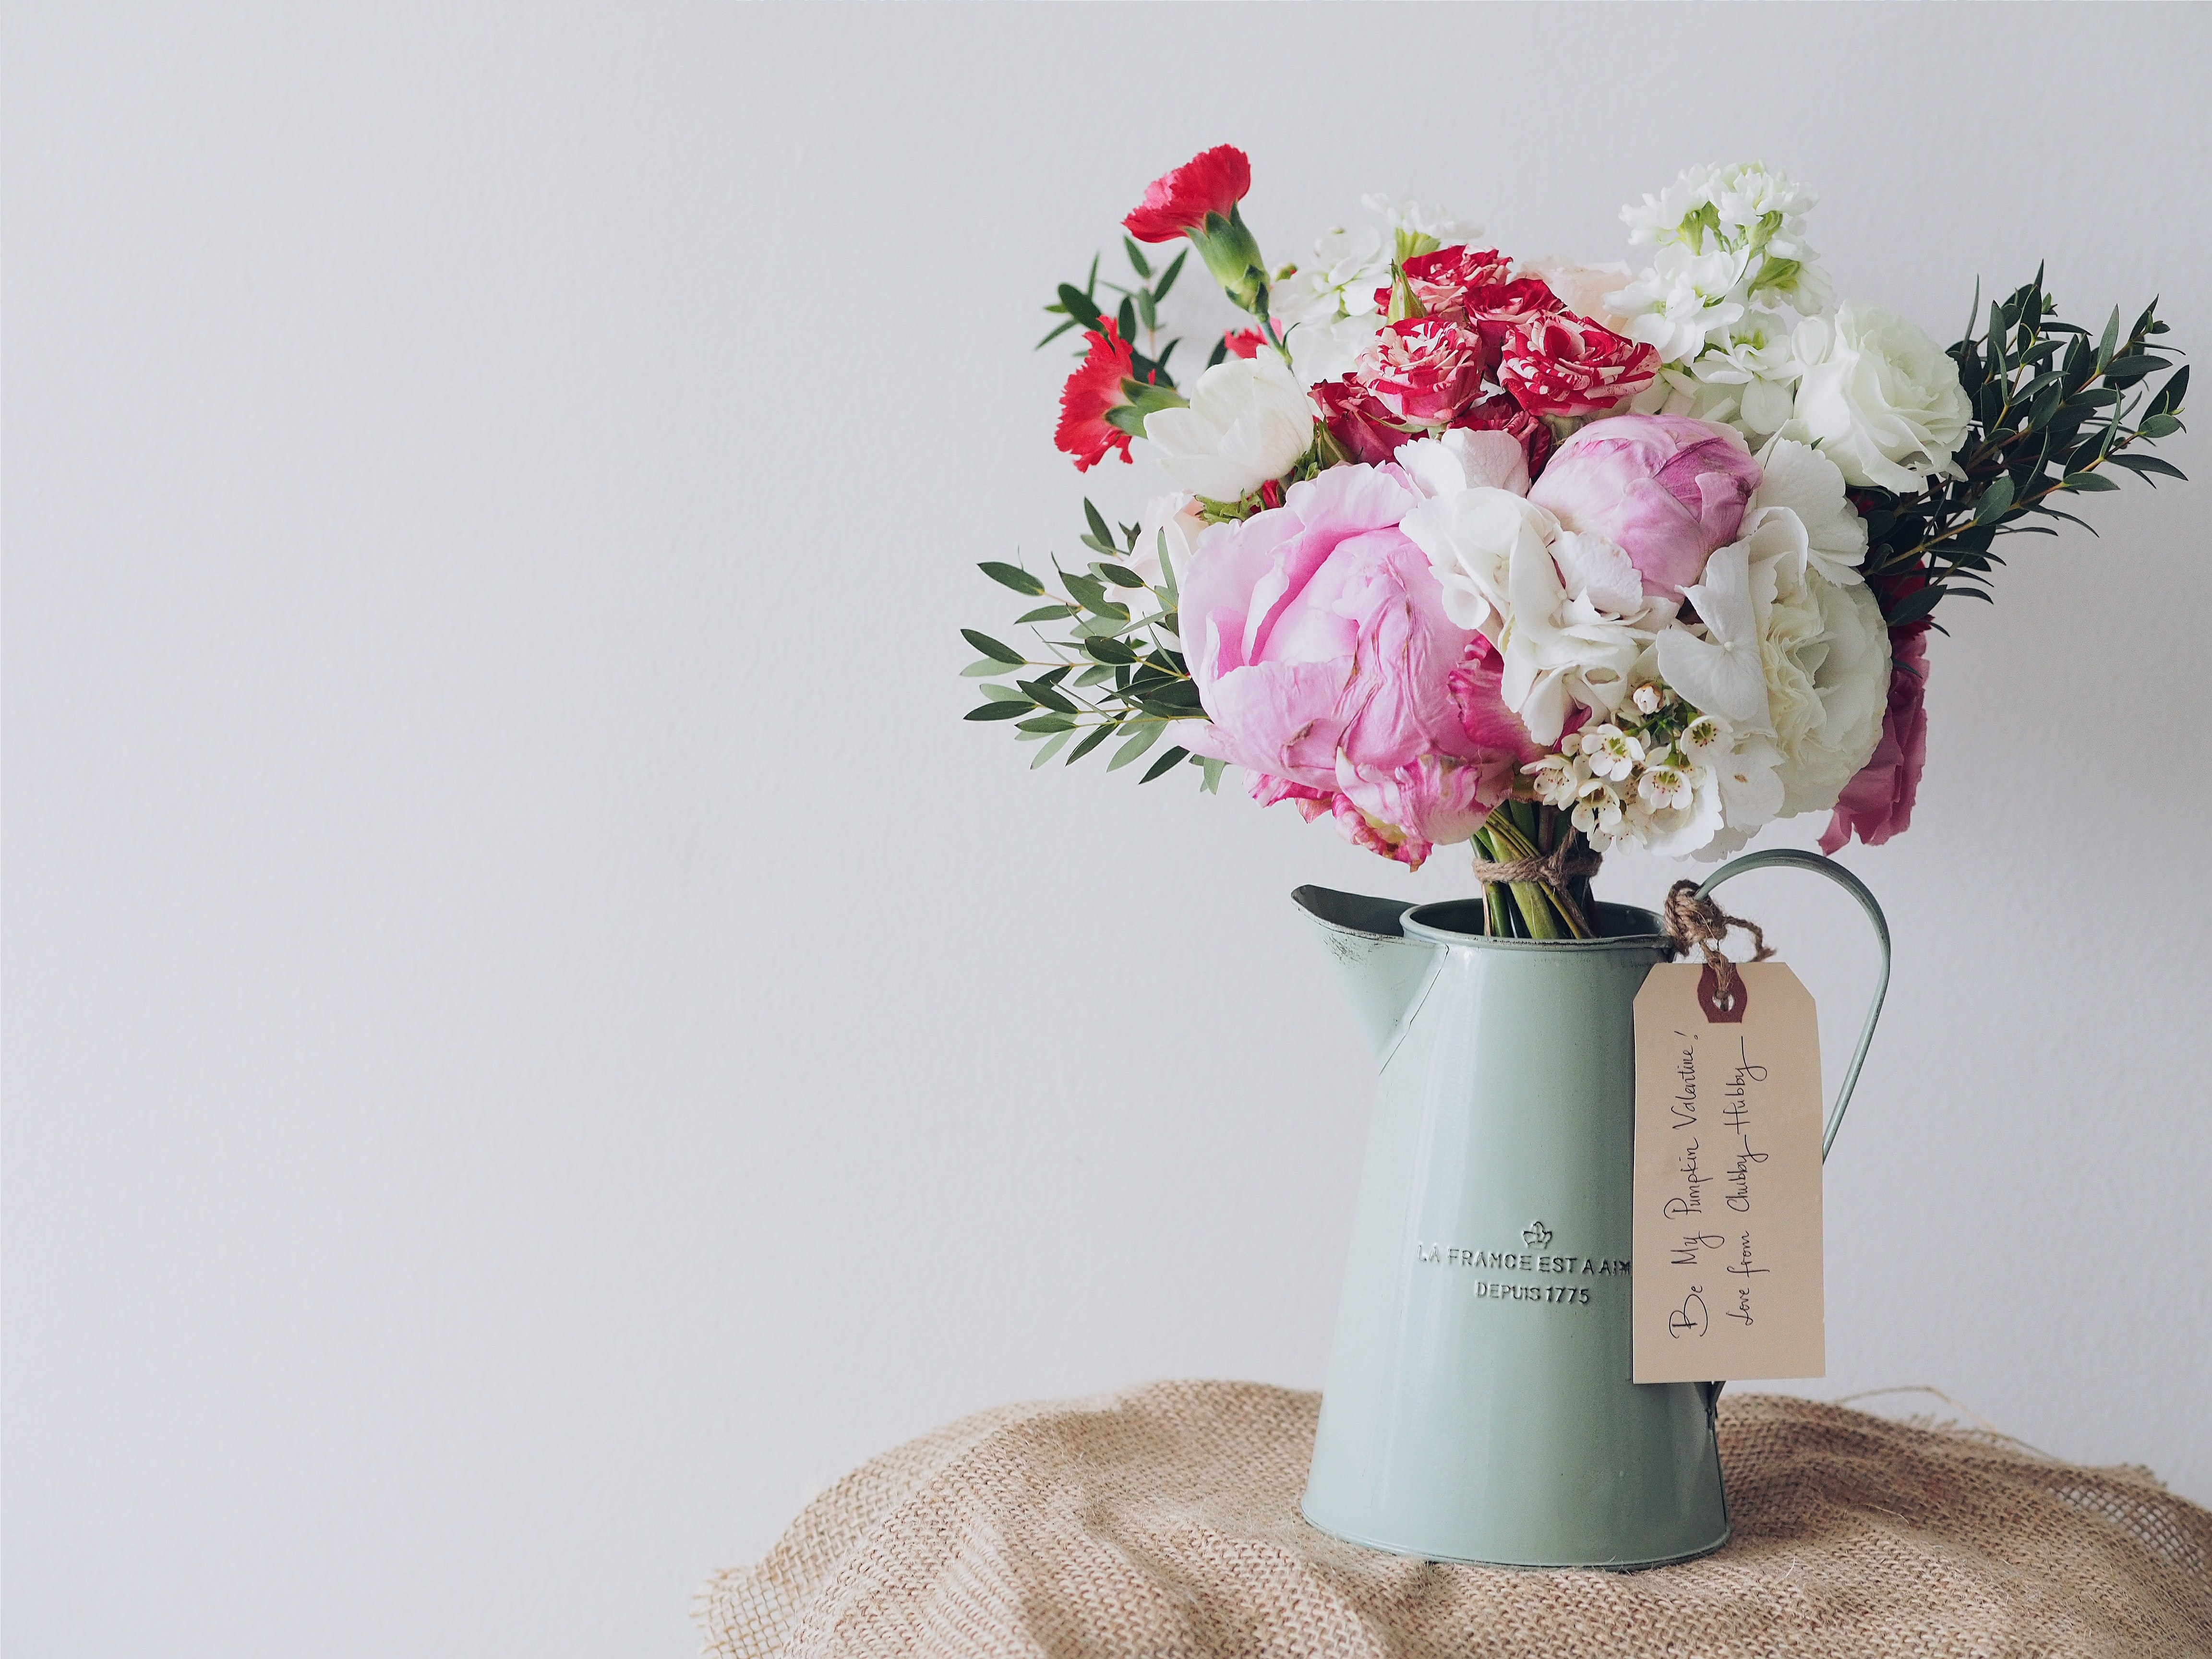 Valentine's Day floral arrangement of roses, carnations, and peonies in a vintage pitcher